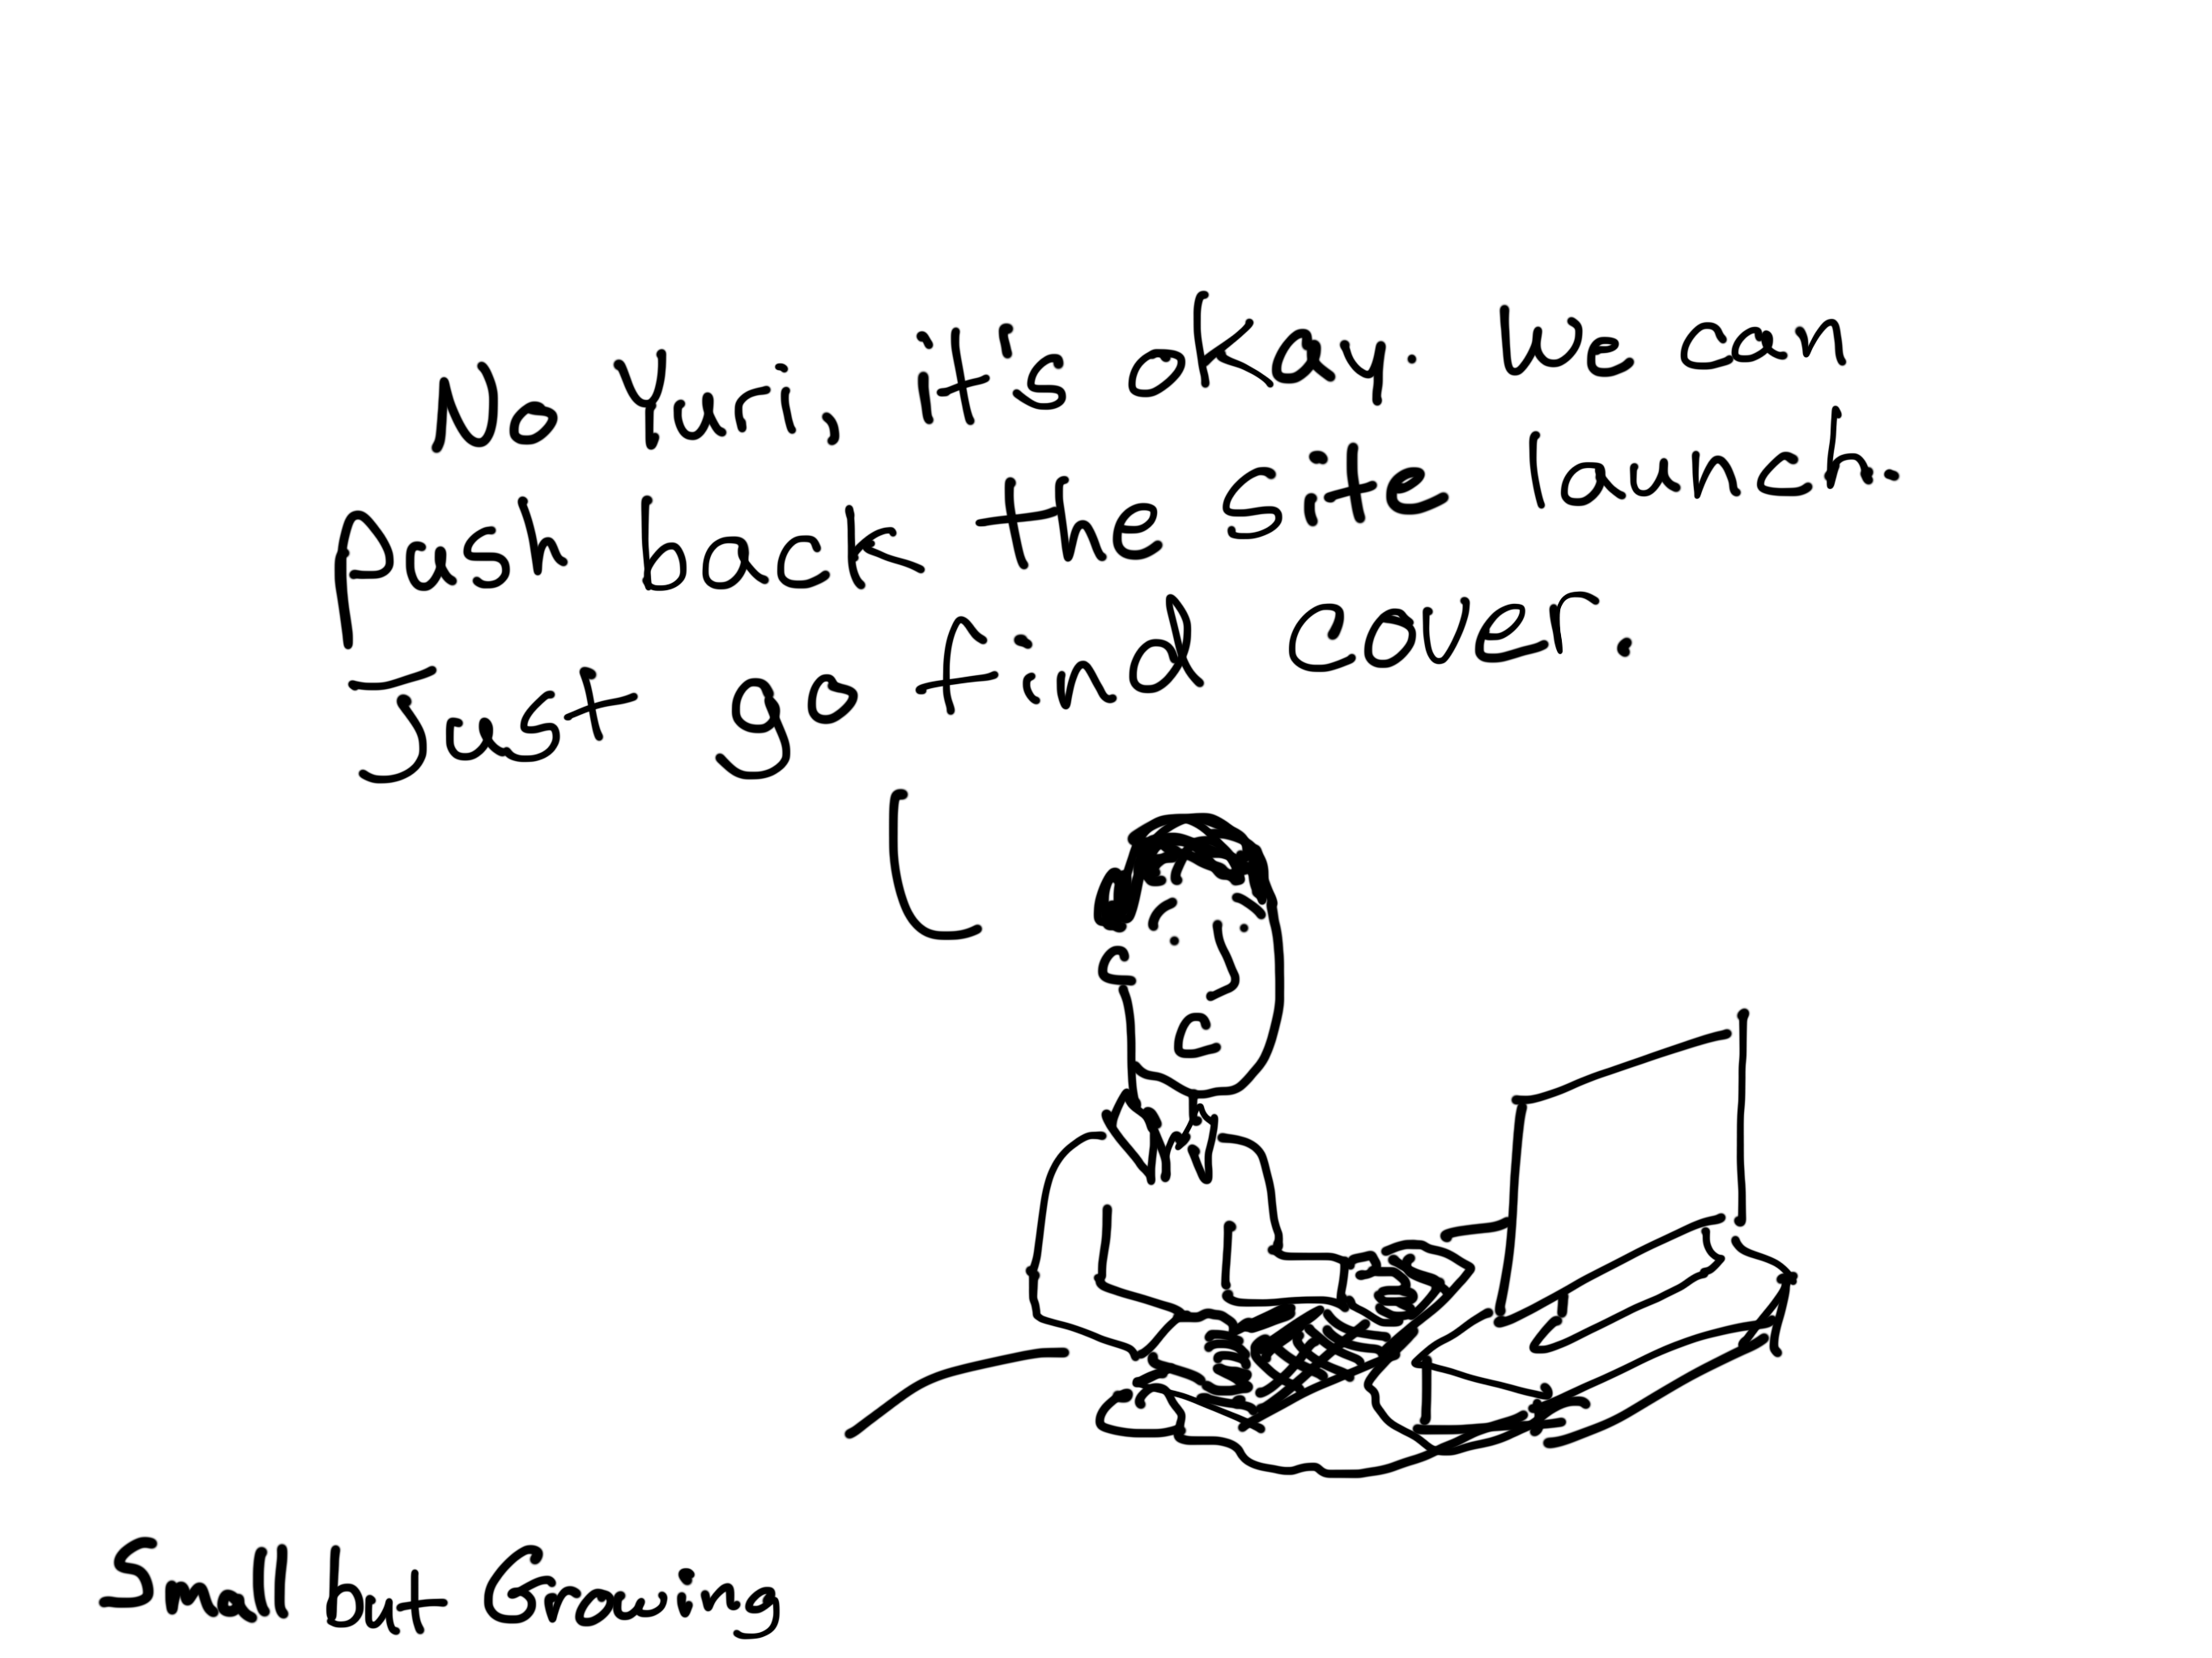 No hurt. It's okay. We can push back the site launch, just go find cover. Cartoon by Chris Lysy